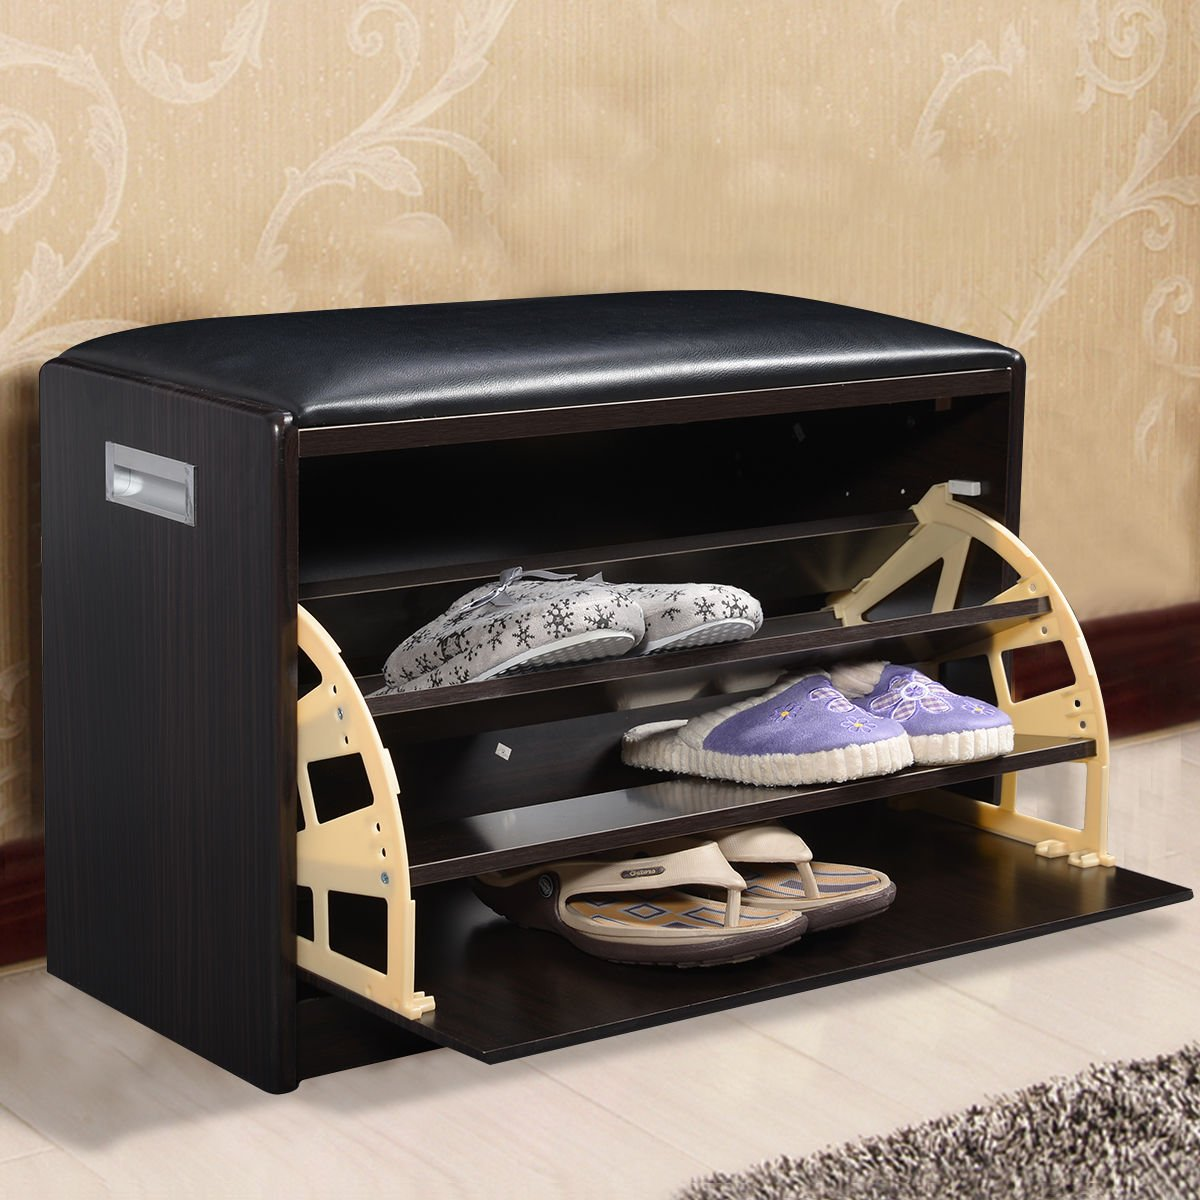 "Amazon.com: Multipurpose Wooden Shoe Ottoman 3 Shelf Cabinet Closet Bench  with Sponge Cushioned Seat - 25""×11.8""×17"": Kitchen & Dining - Amazon.com: Multipurpose Wooden Shoe Ottoman 3 Shelf Cabinet"